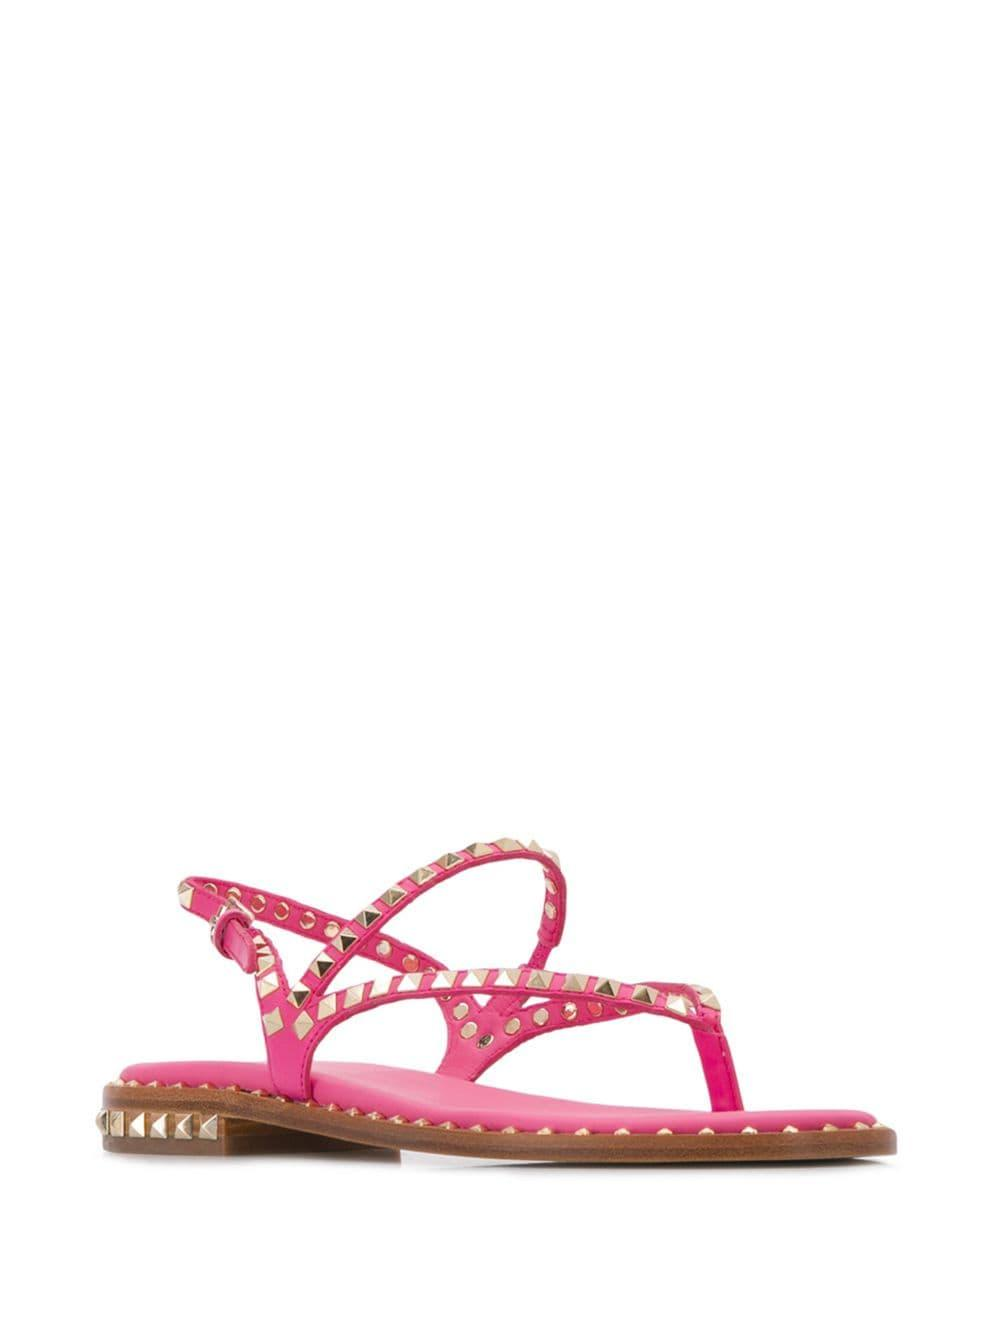 7fed0937f021 Lyst - Ash Peps Studded Strappy Sandals in Pink